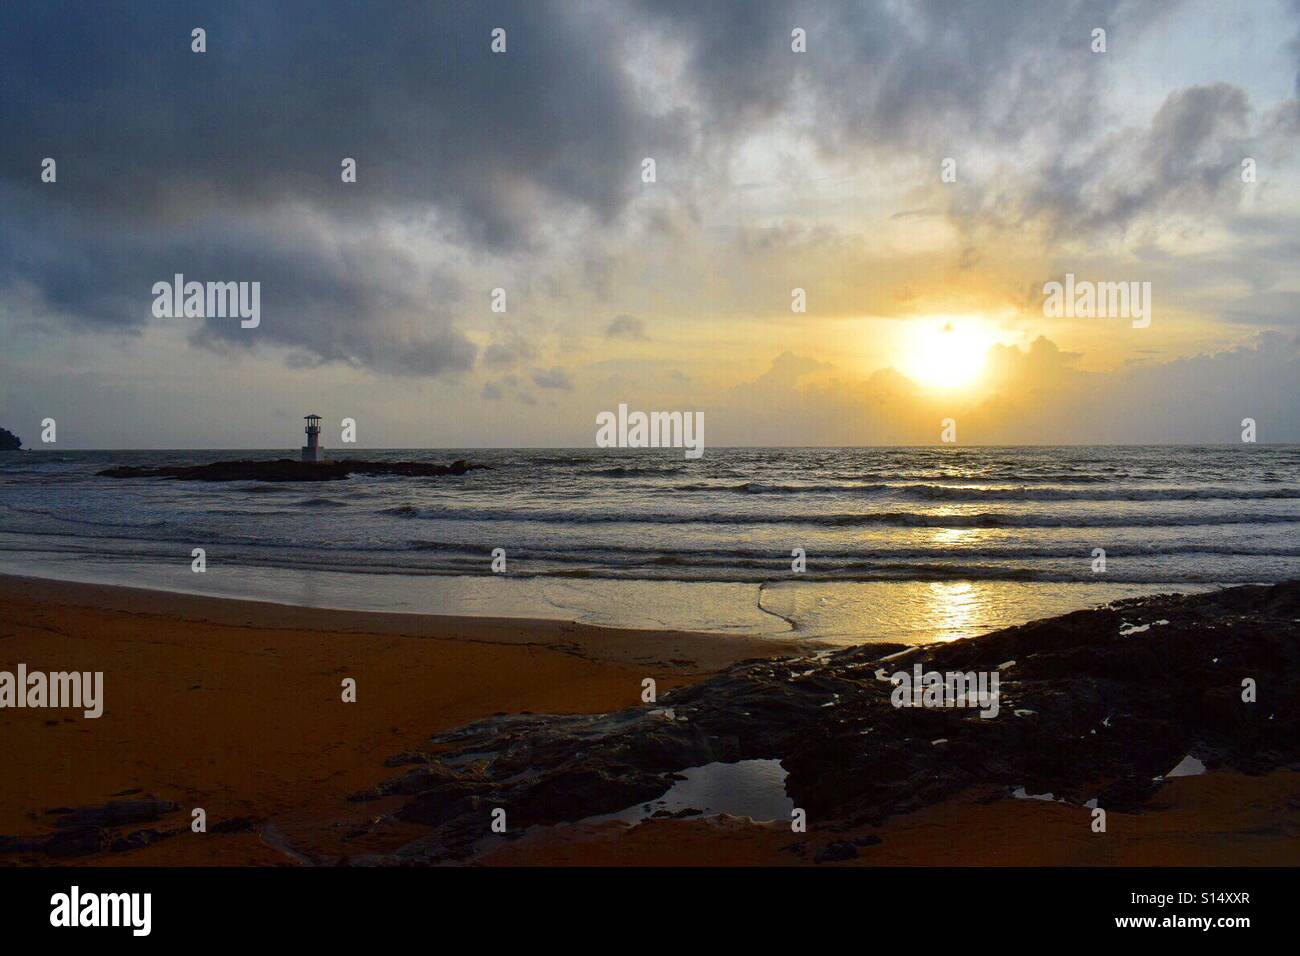 Sunset beach in Khoa Lak, on the western coast of Thailand. A lighthouse in the foreground at low tide. Captured - Stock Image